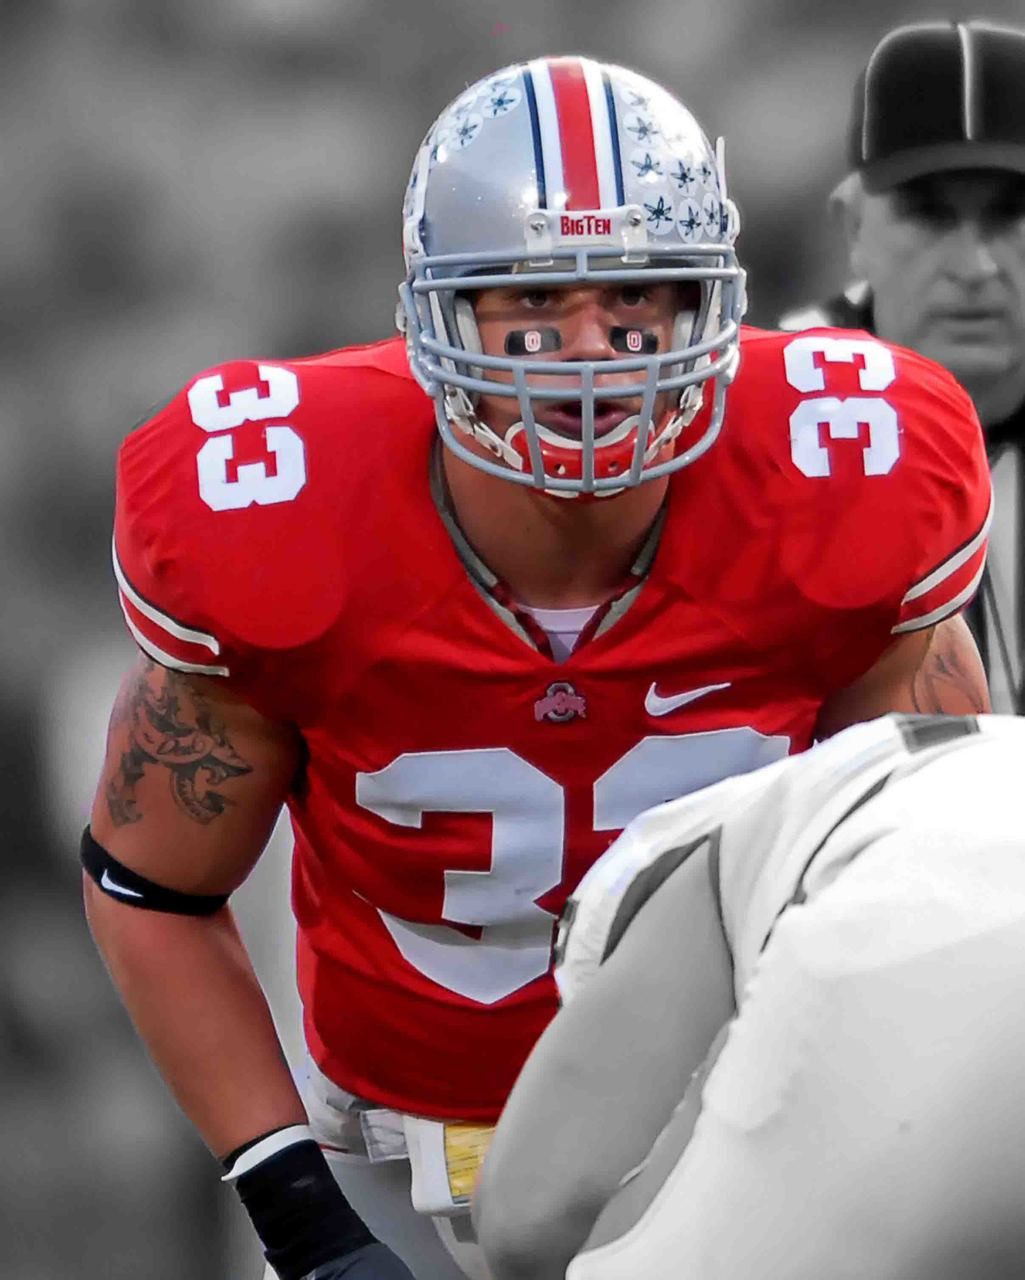 brand new bd6f8 c5035 James Laurinaitis Ohio State Buckeyes Licensed Unsigned Photo (8)